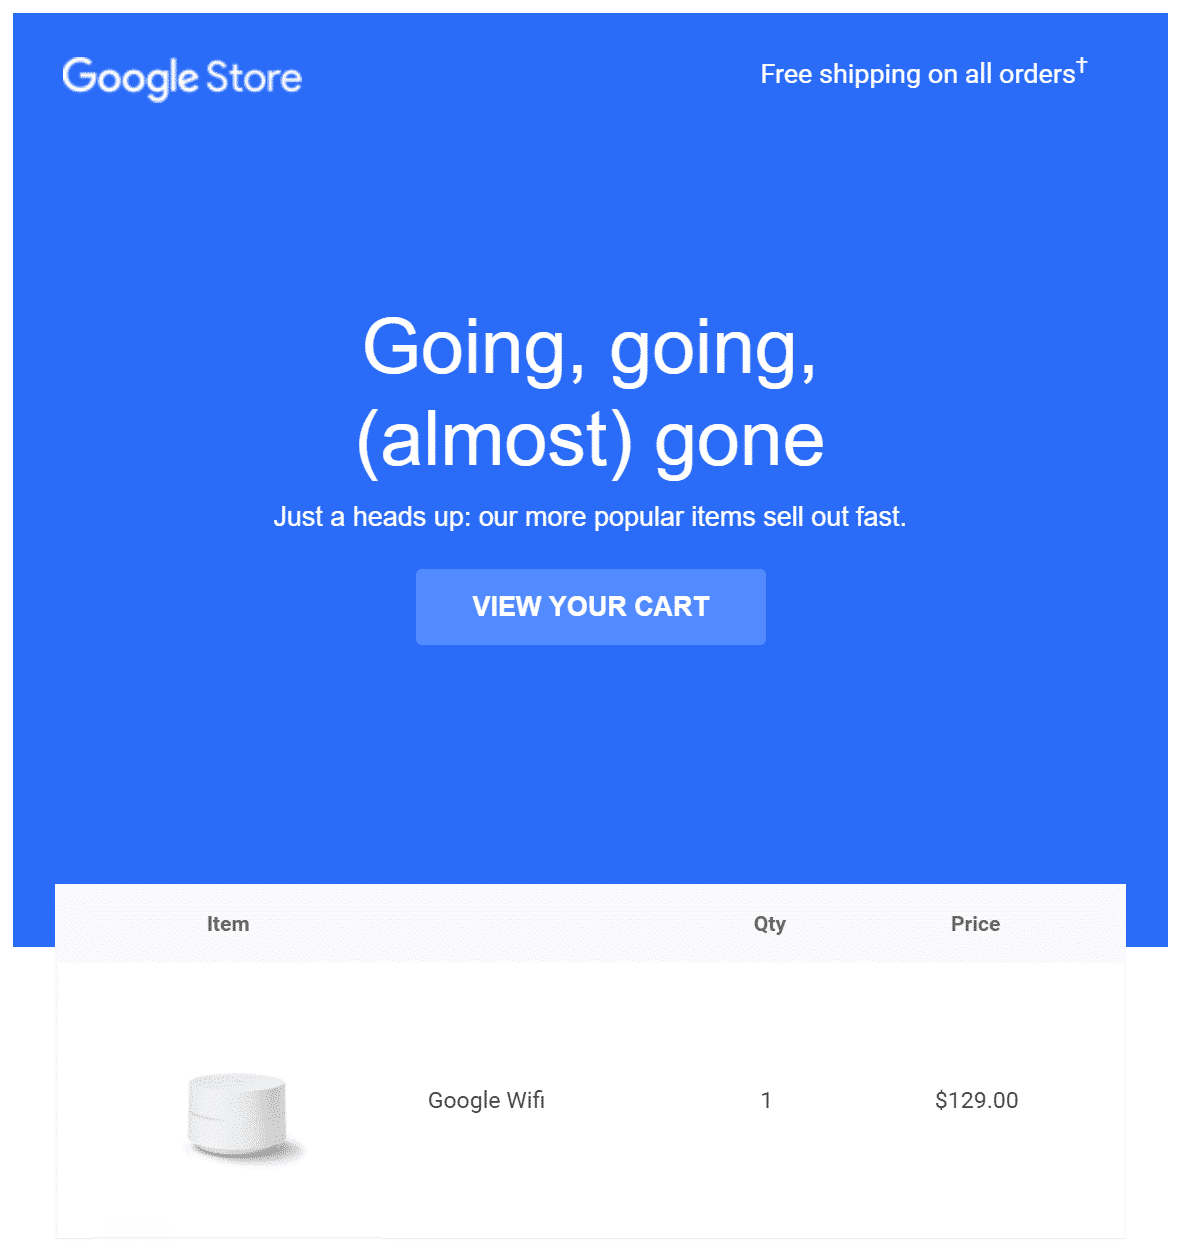 Exemple d'un code de réduction Google Store